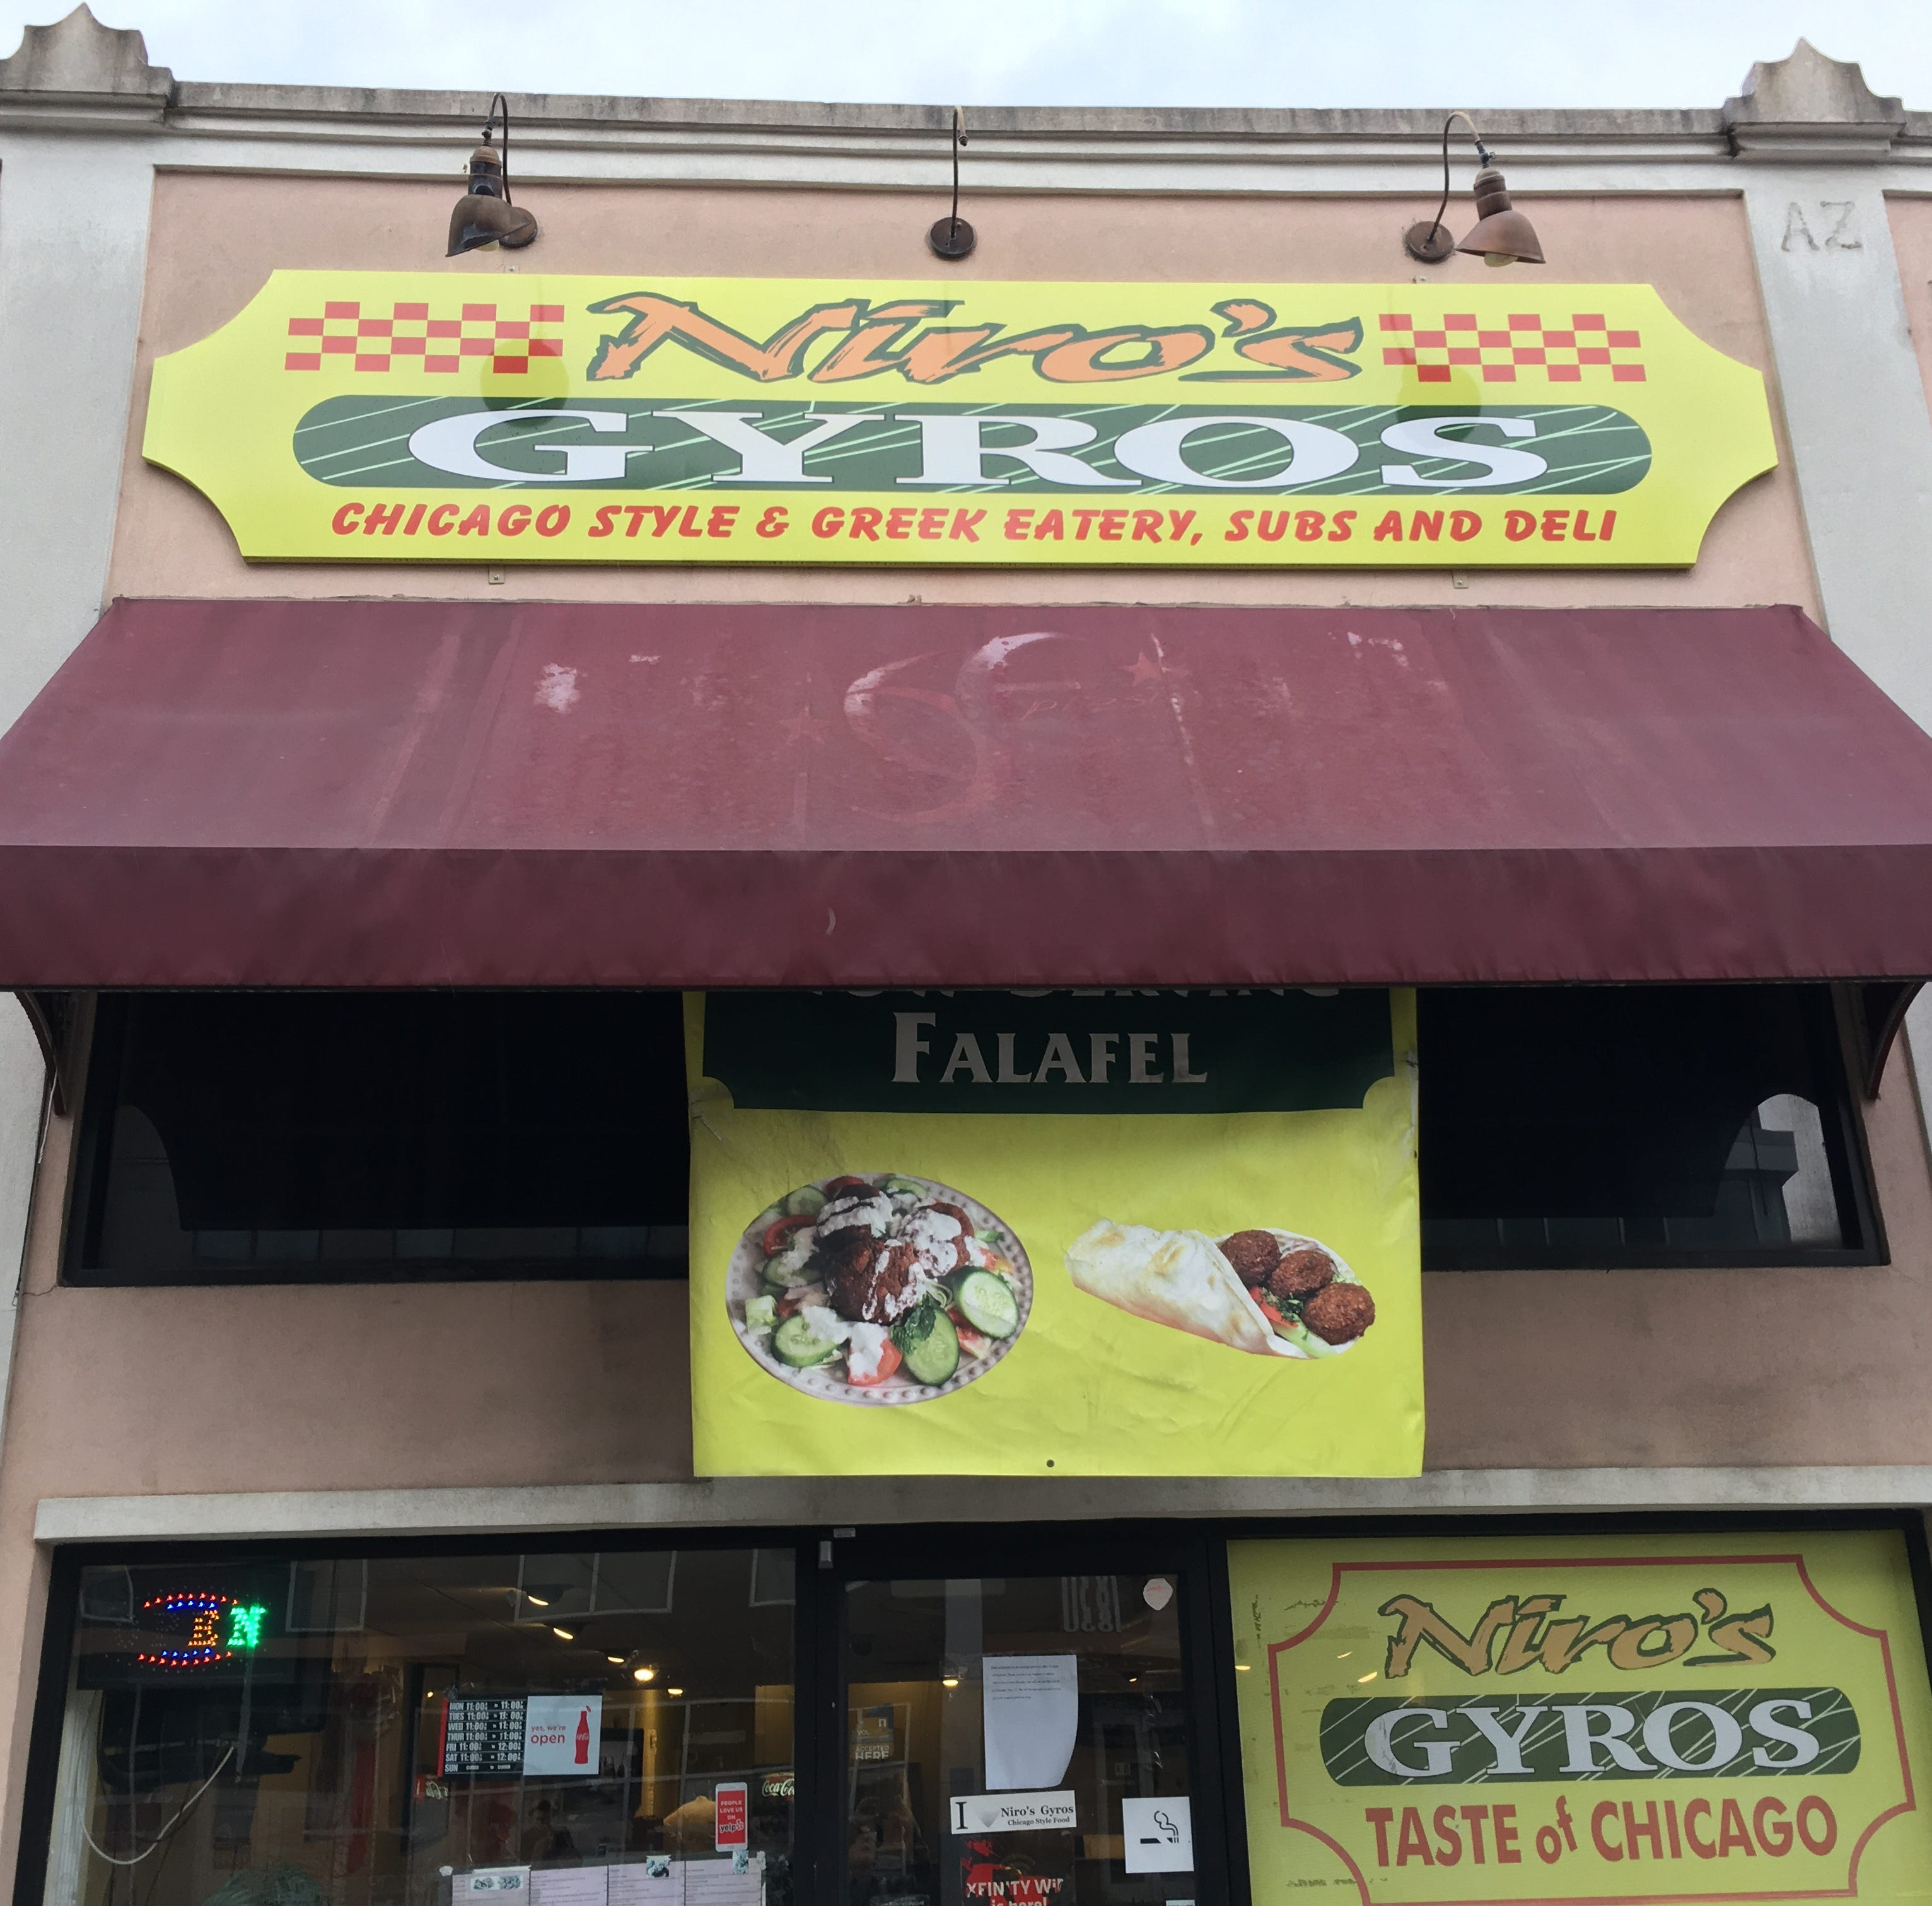 Niro's Gyros on Cumberland Avenue to close after 12 years of operation